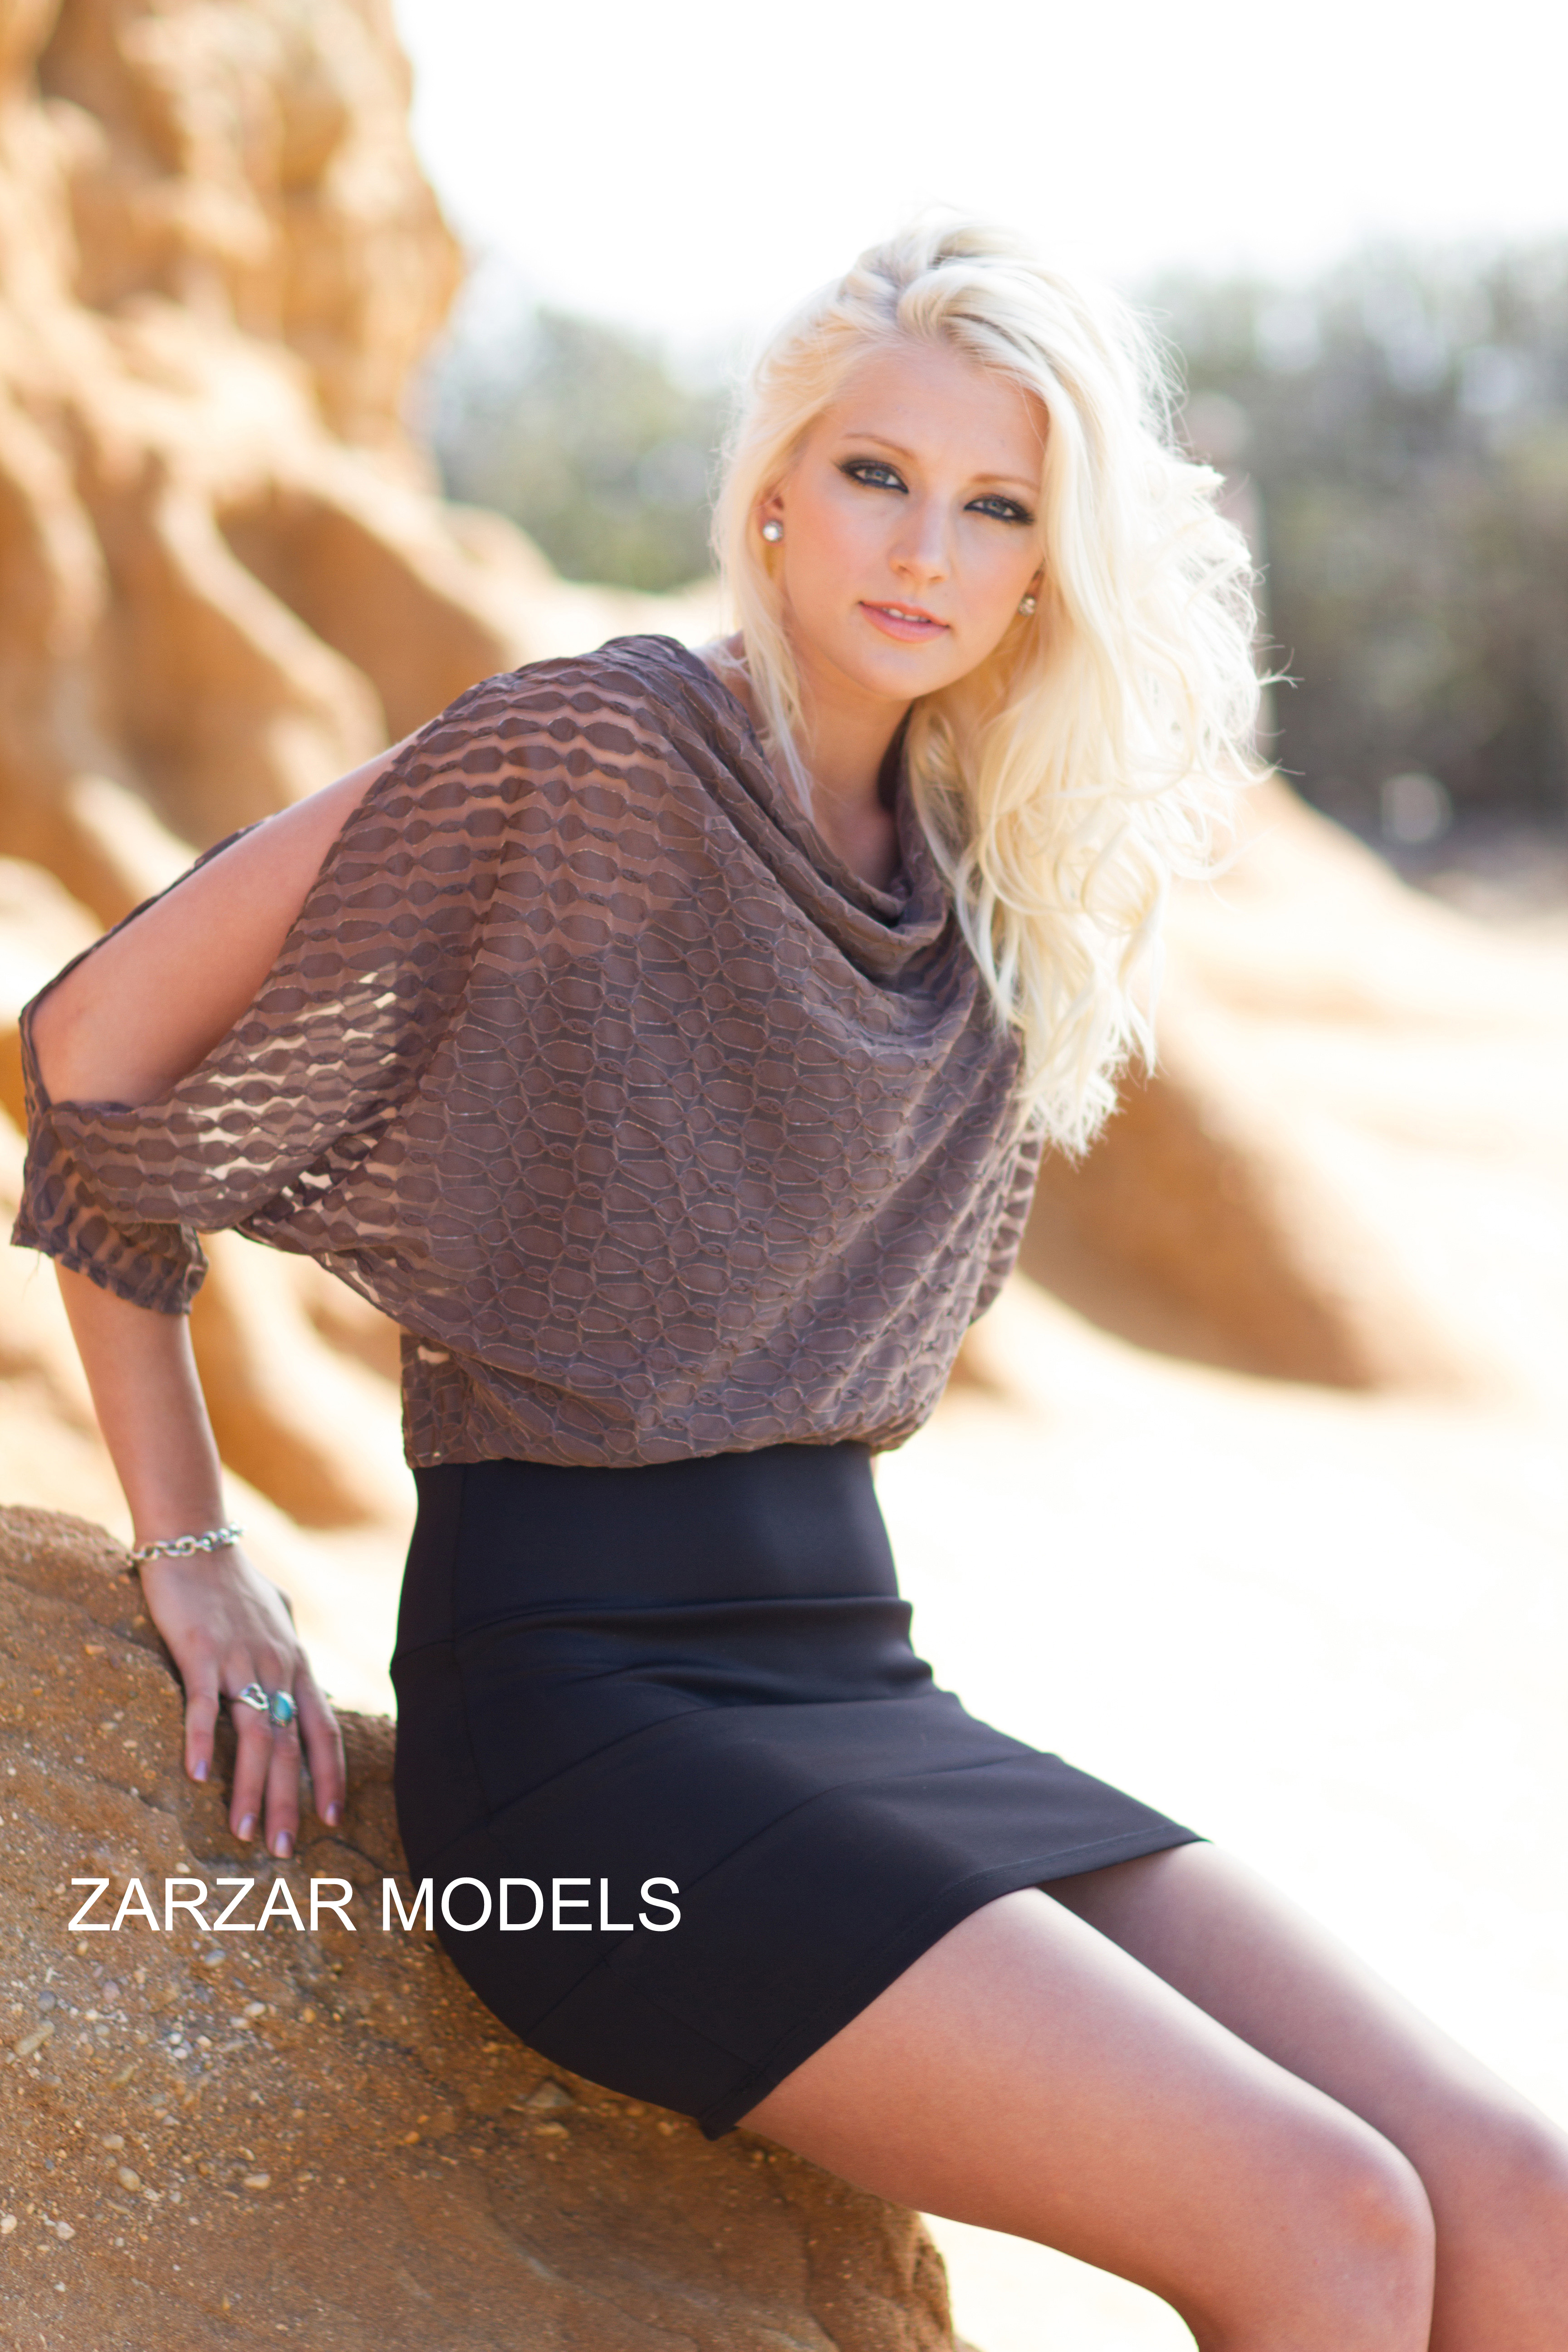 Beautiful Blonde ZARZAR MODEL Brooke Rilling Modeling In San Diego Southern California Modeling In Classic Black Skirts For Fashion Ads. ZARZAR MODEL Brooke Rilling Knows The Secrets Of Eating Healthy And Eating The Right Foods In Order To Have Healthy Beautiful Looking Skin.